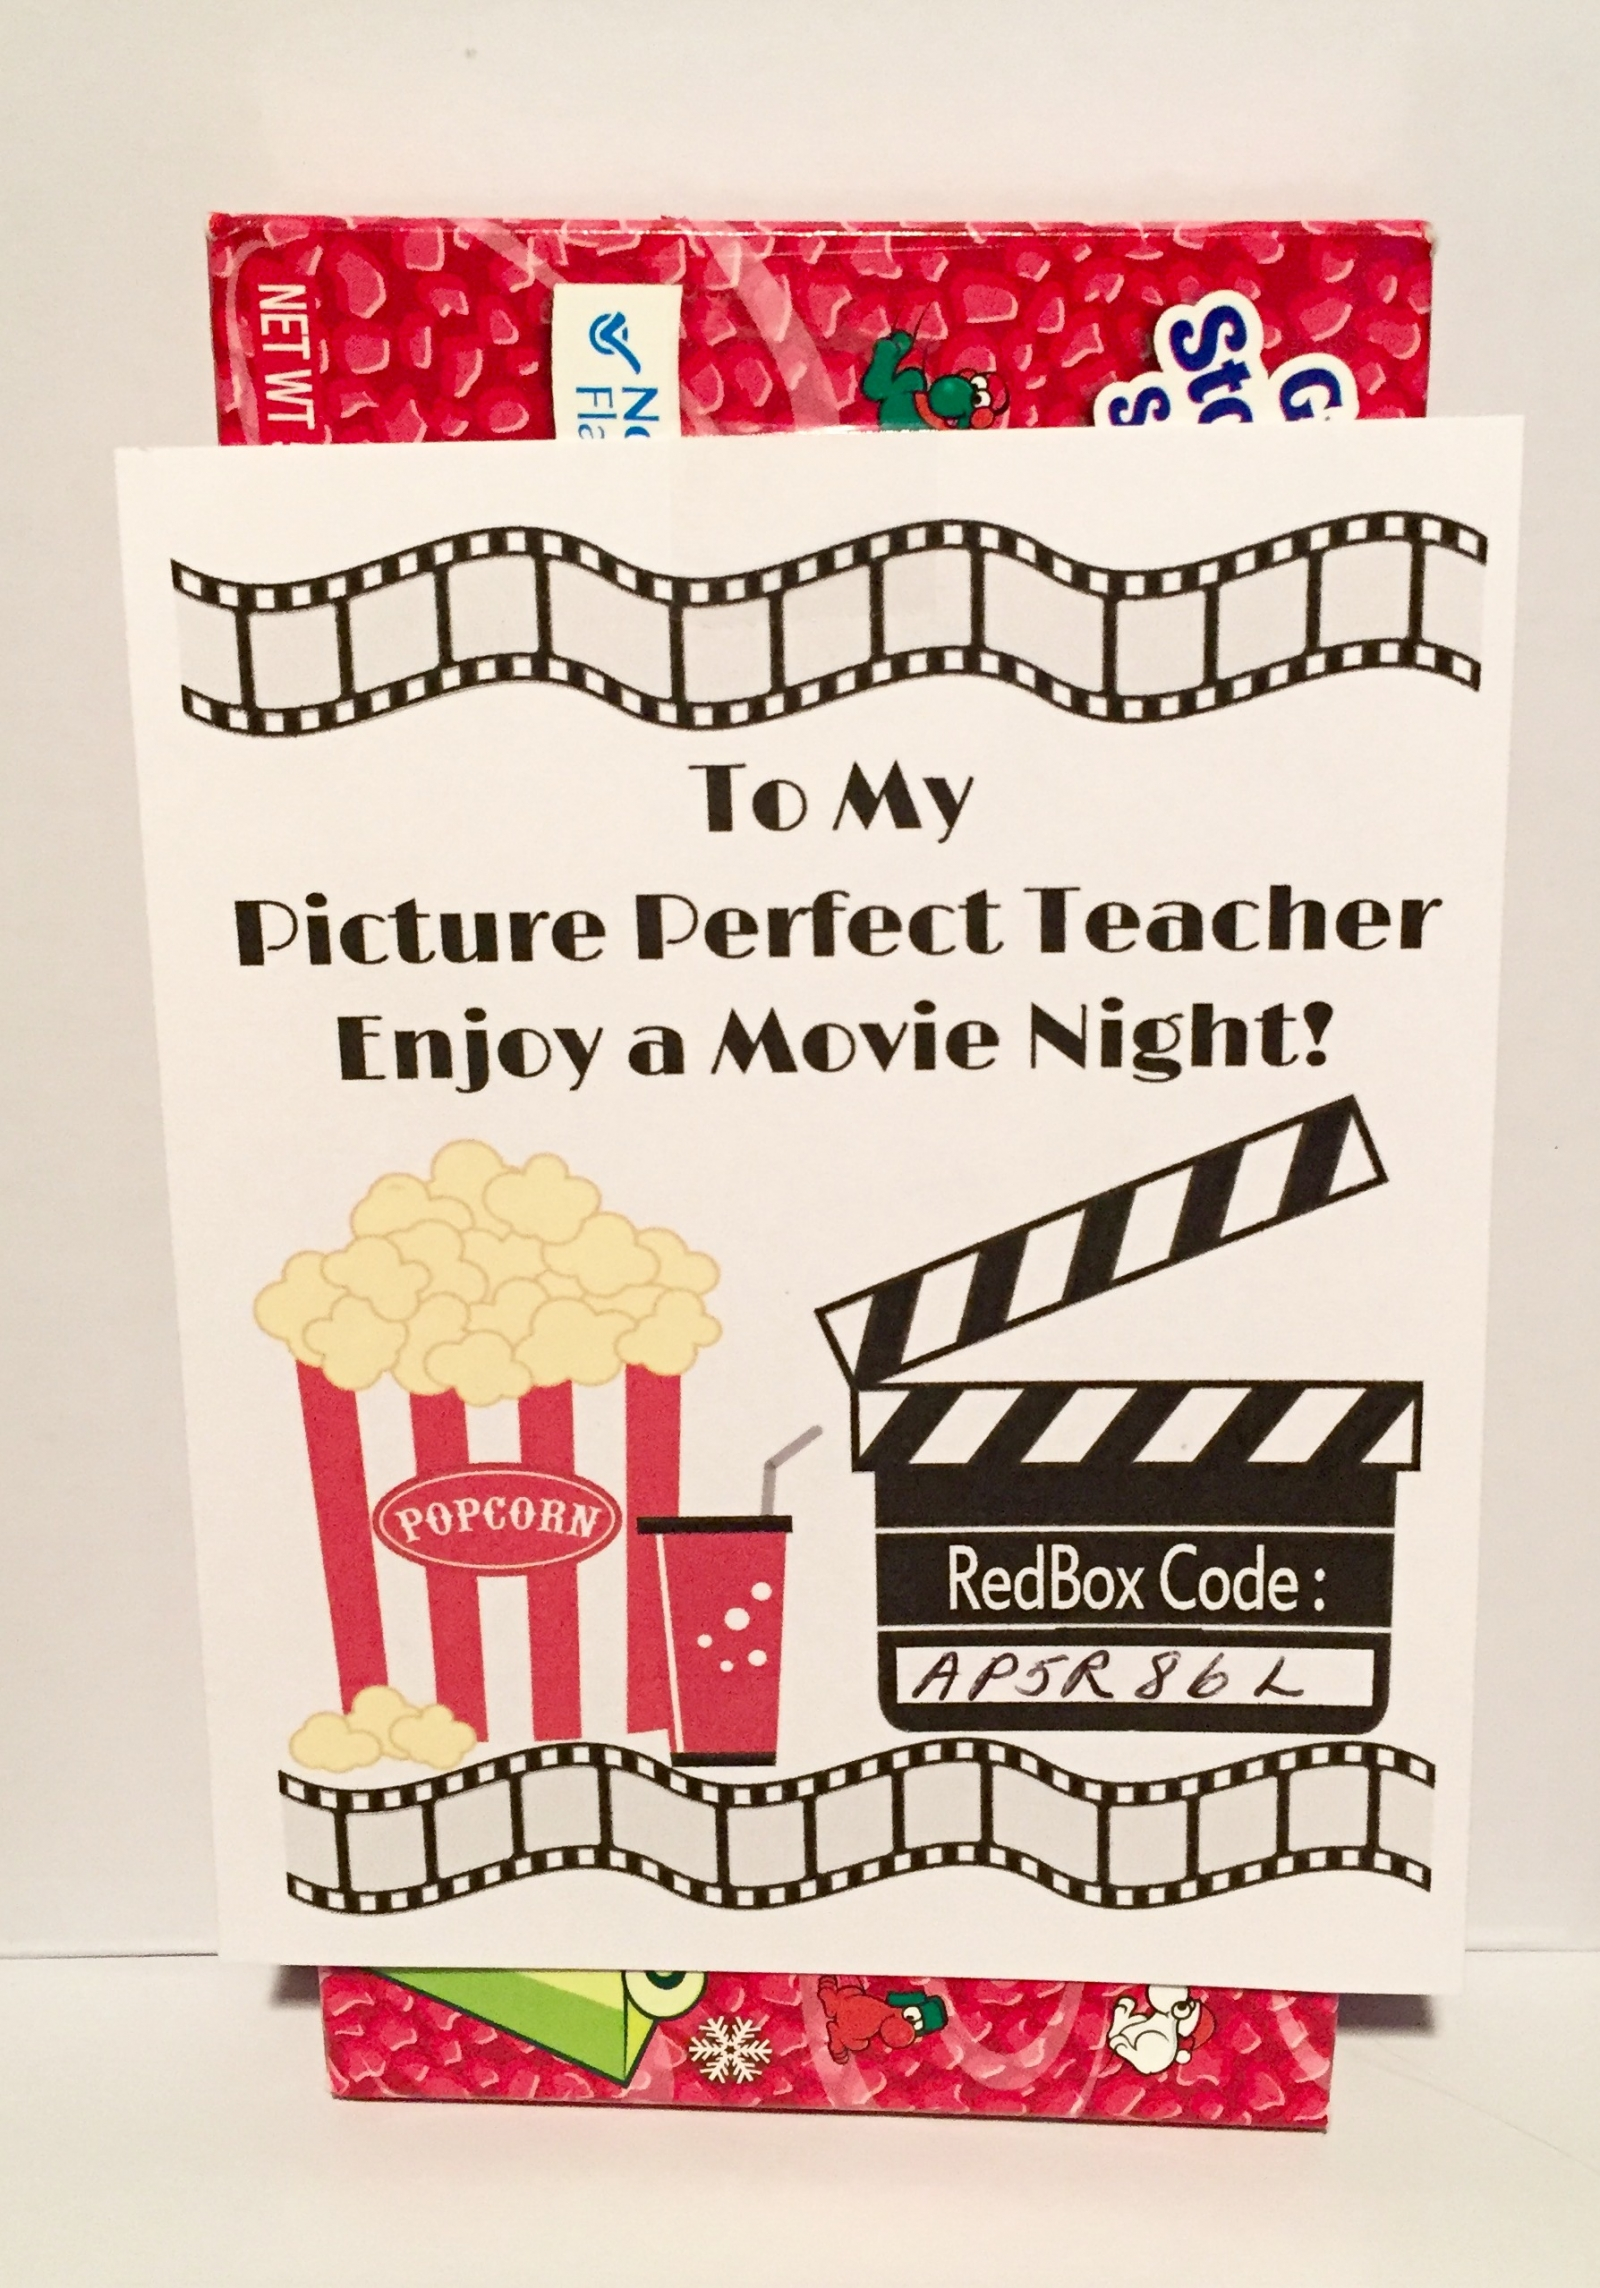 photograph regarding Redbox Teacher Appreciation Printable known as Redbox Printable Trainer Appreciation Present Tag - Do it yourself - Printable History